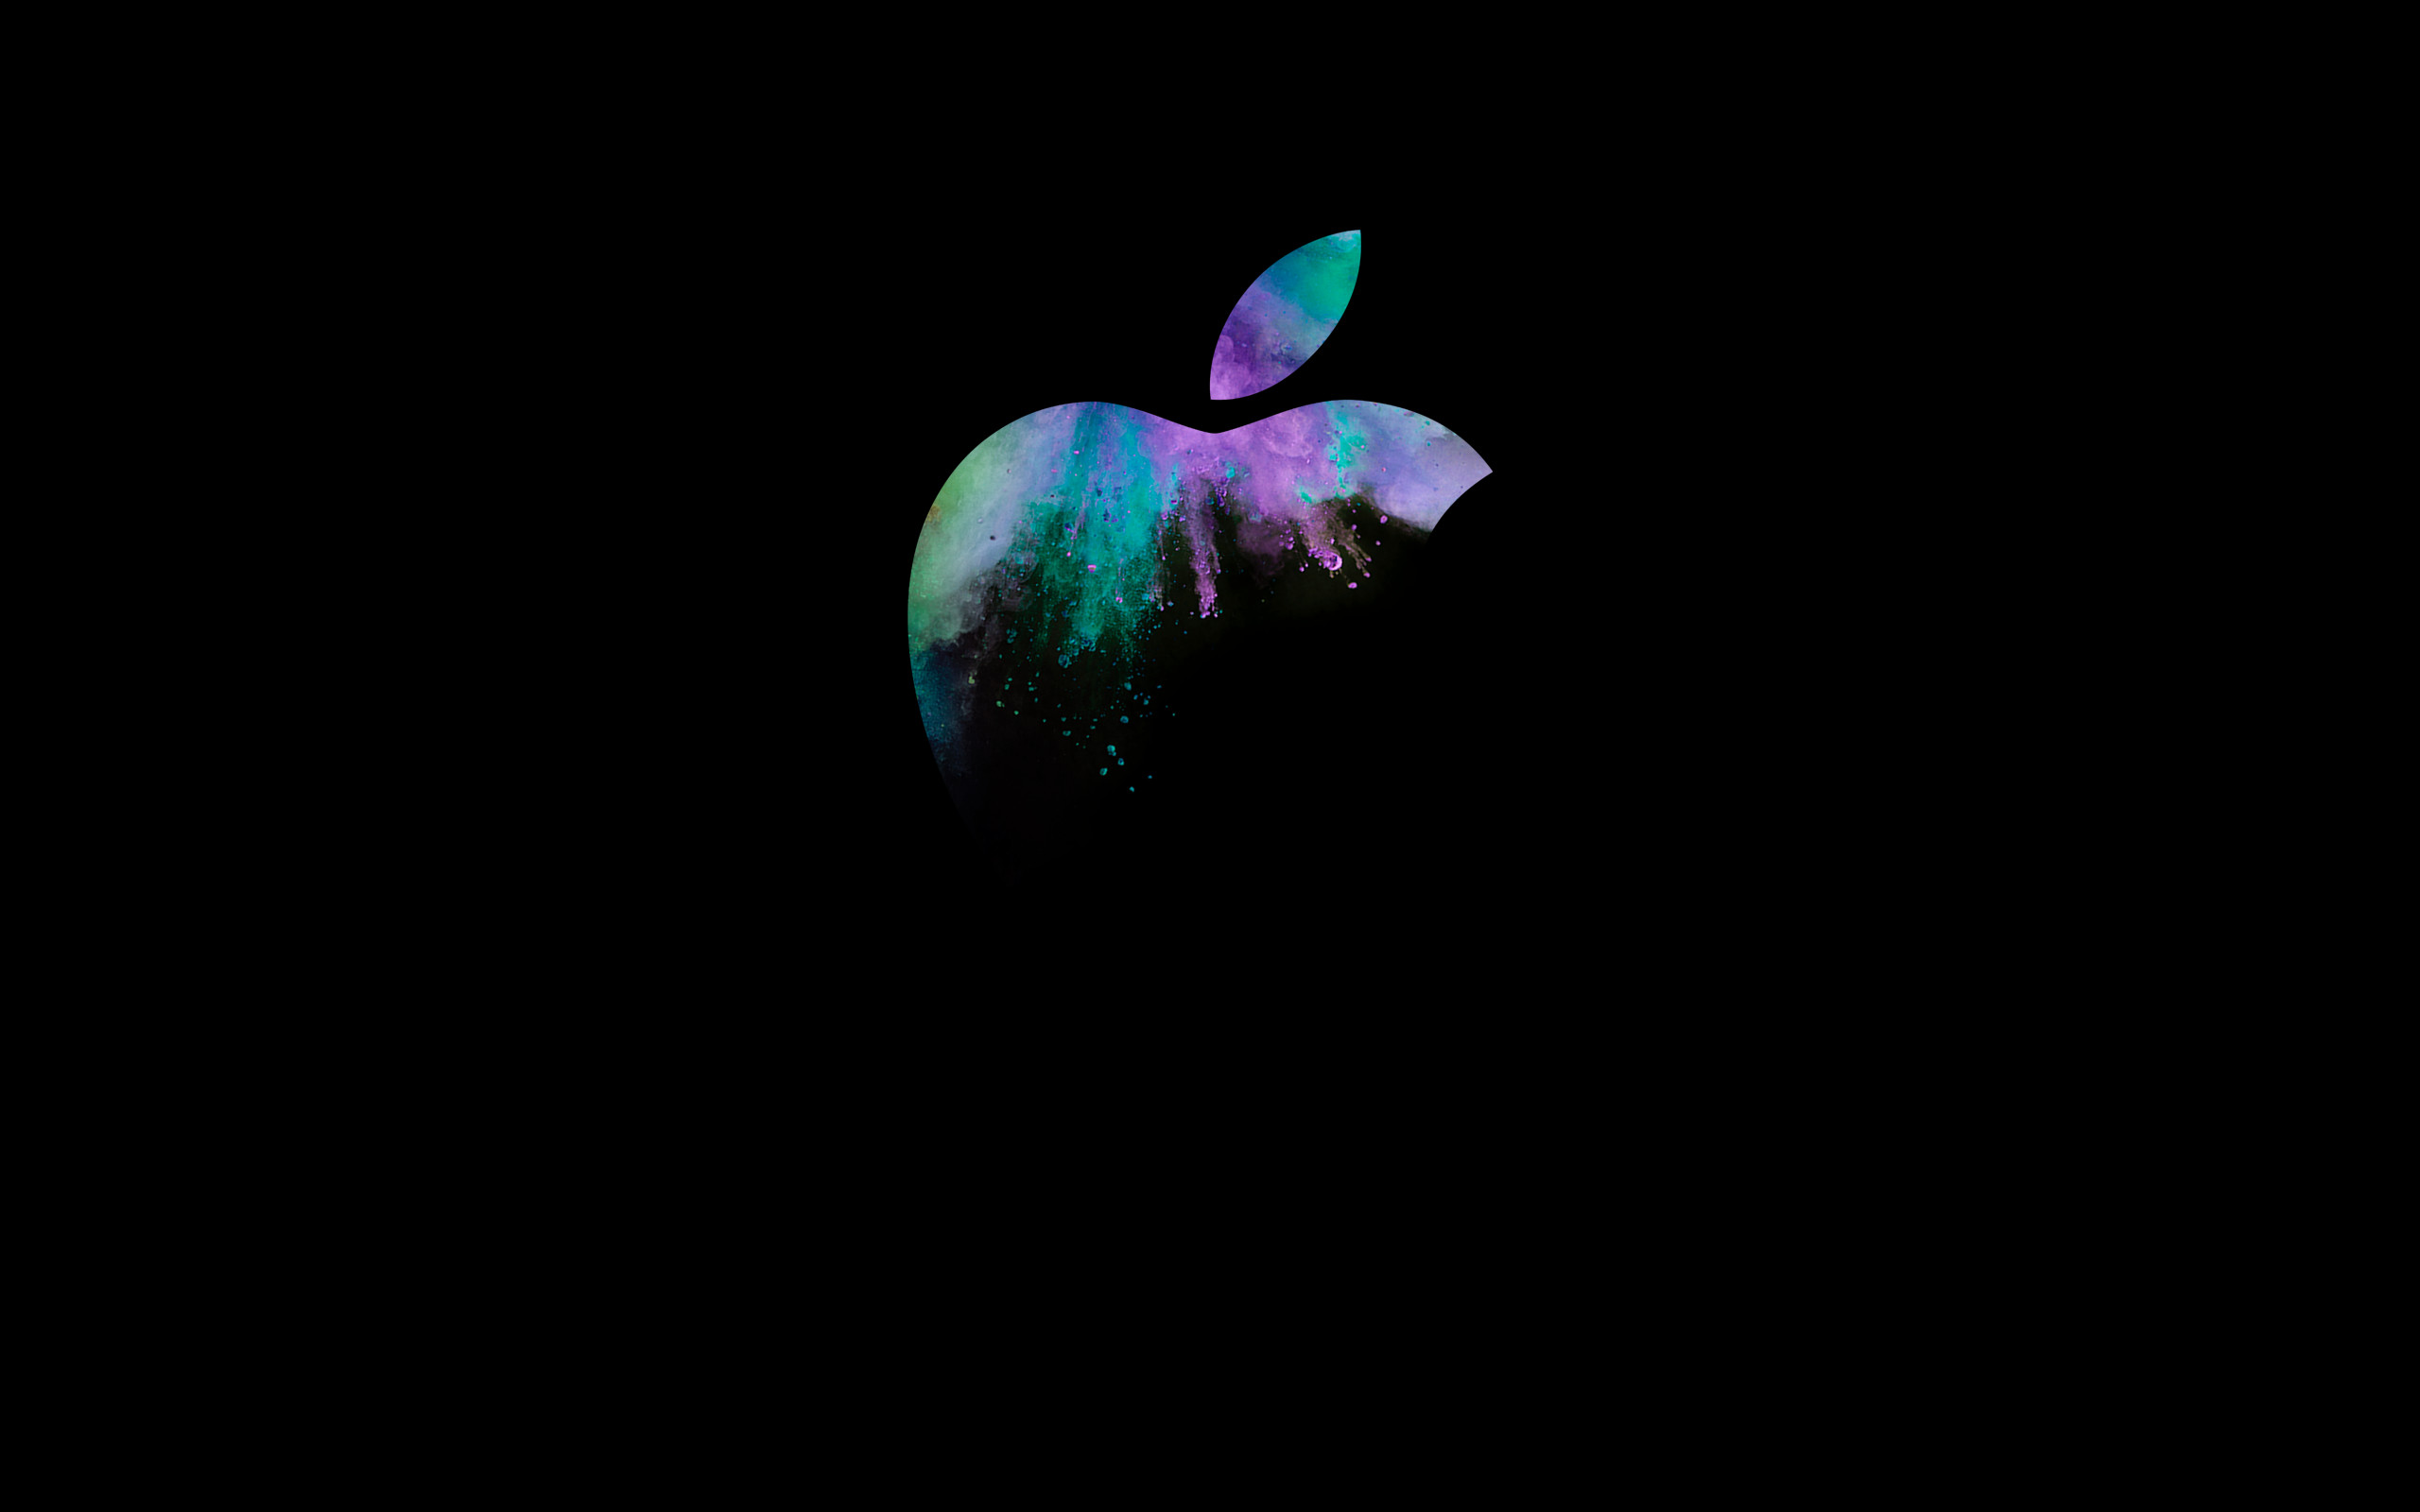 Wallpaper For Macbook Pro 73 Images